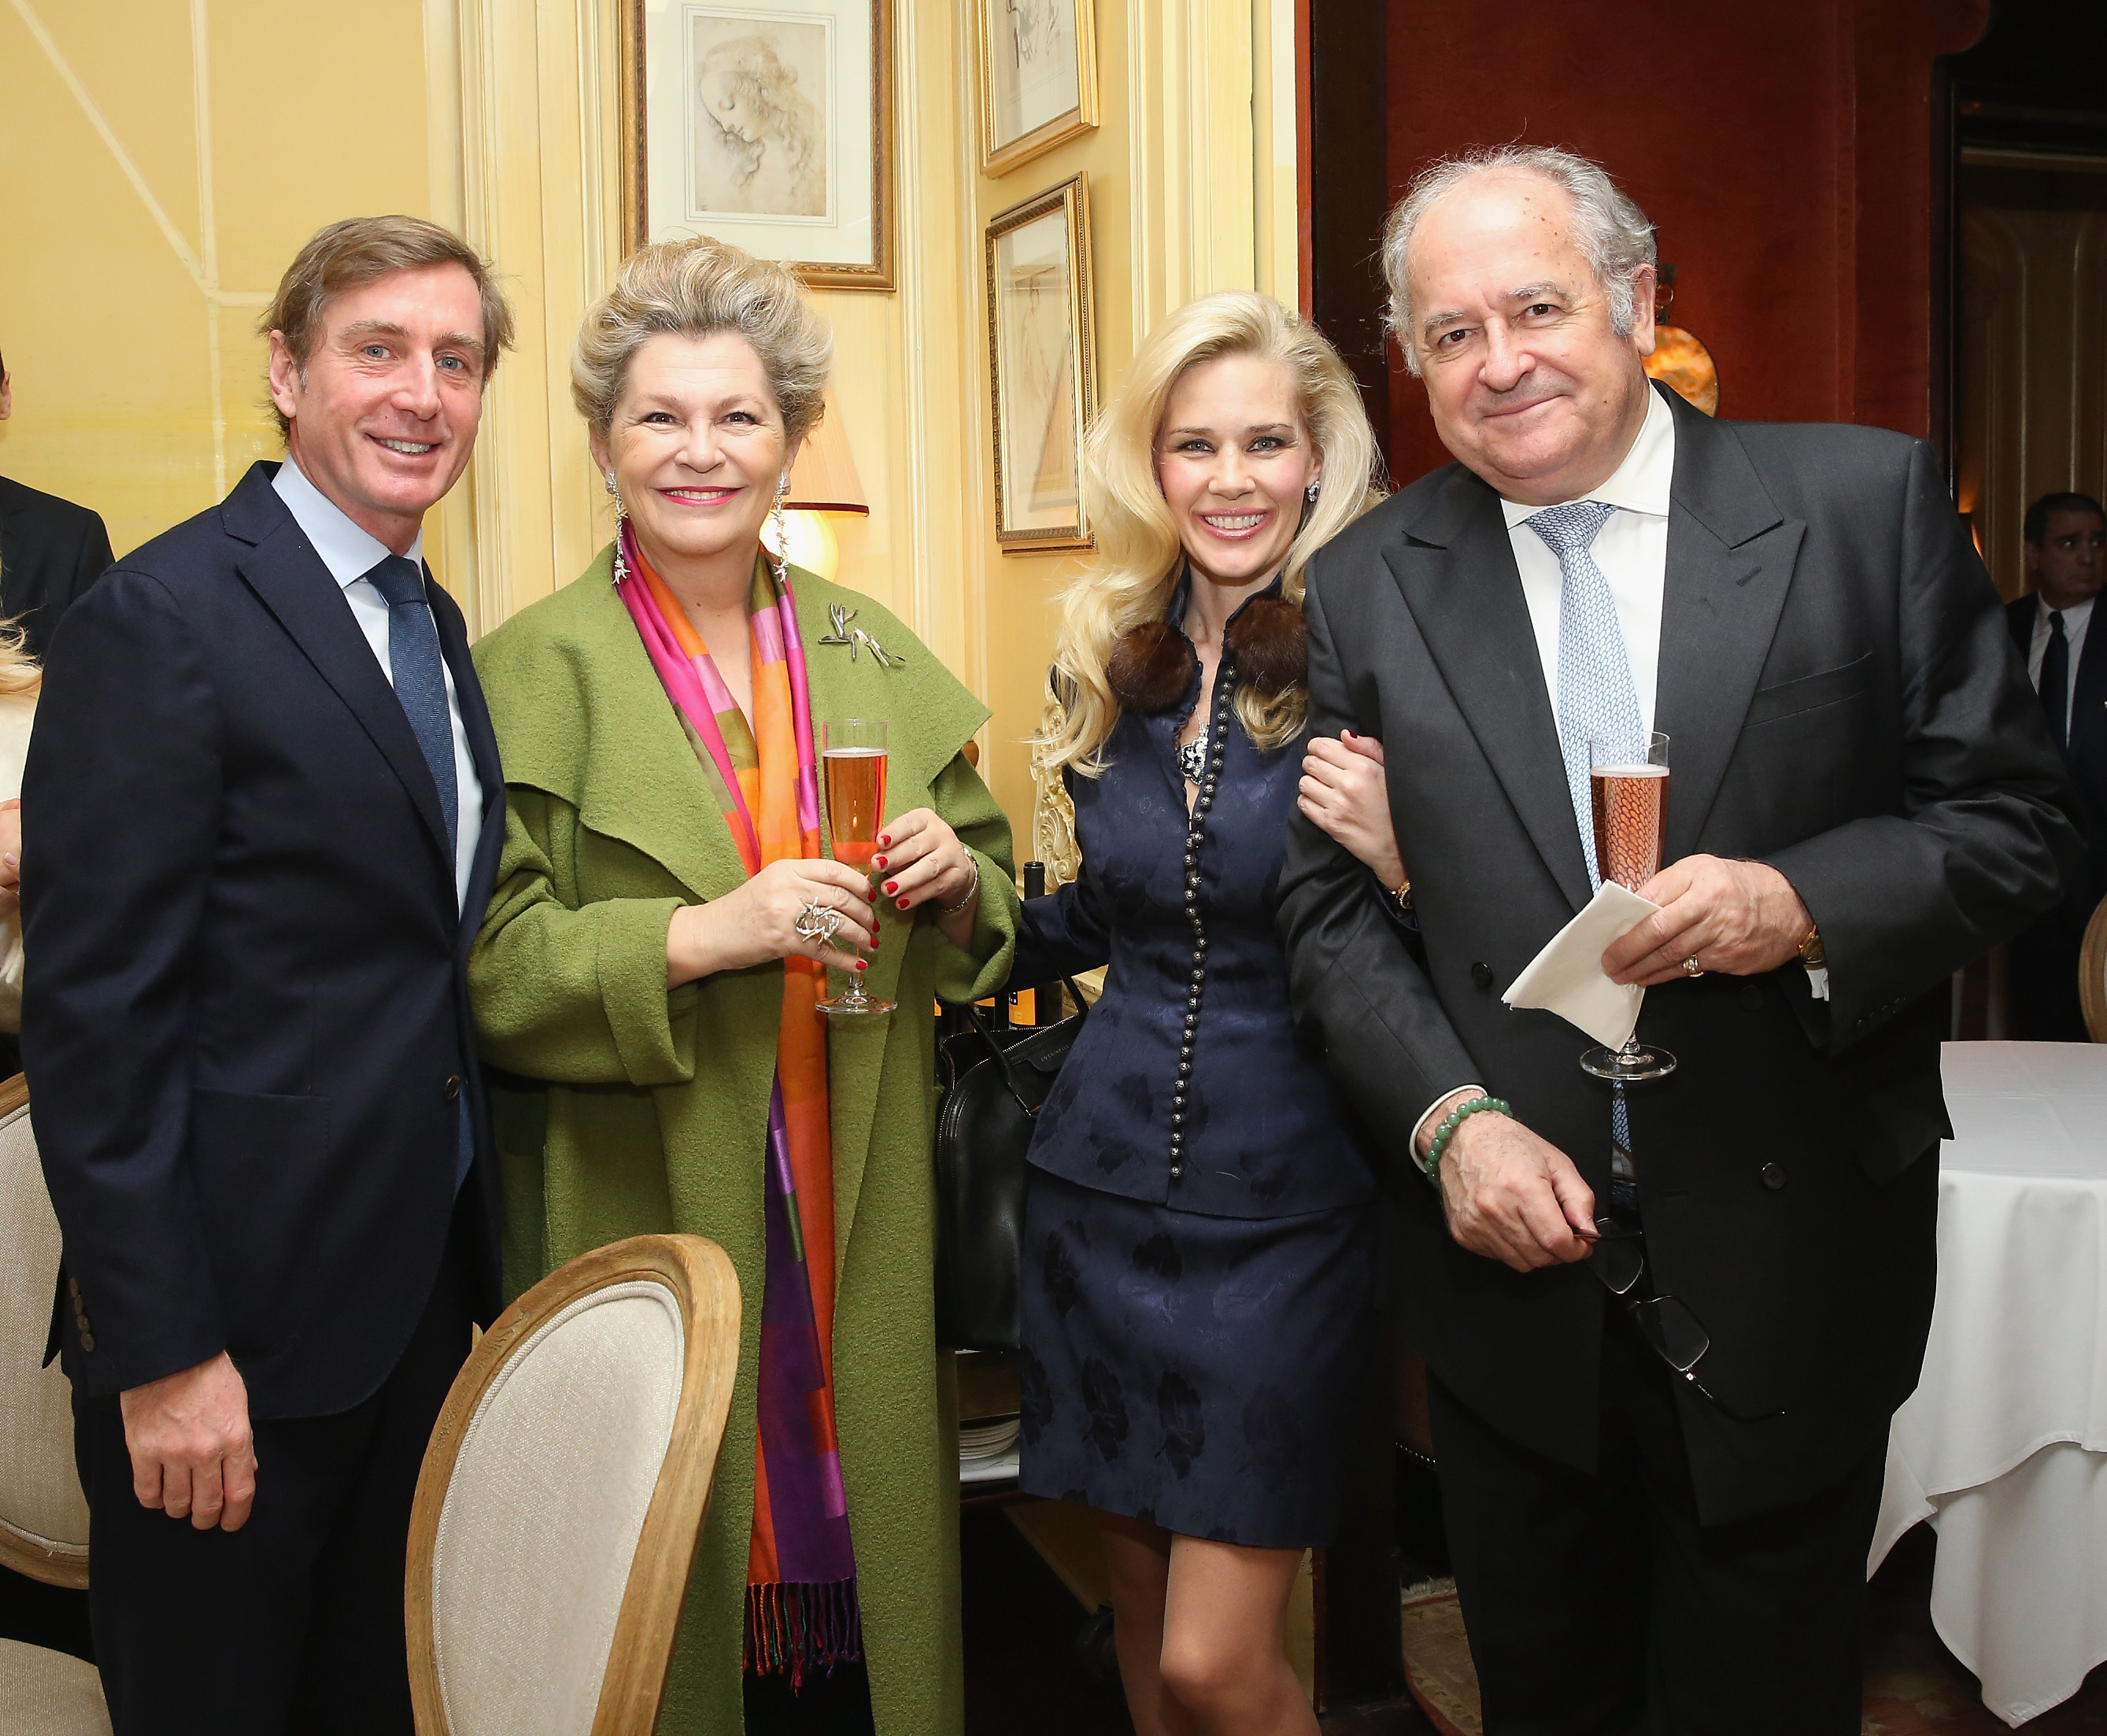 NEW YORK, NY - JANUARY 08: Prince Charles Henri Lobkowicz, Dr. Tamas Lorinczy, New York Socialite Michelle-Marie Heinemann and Ambassador Katalin Annamaria Bogyay attend New York Socialite Michelle-Marie Heinemann Hosts Luncheon For Prince Charles Henri Lobkowicz At Plaza Athenee on January 8, 2016 in New York City. (Photo by Robin Marchant/Getty Images for Old Fashioned Mom Magazine)